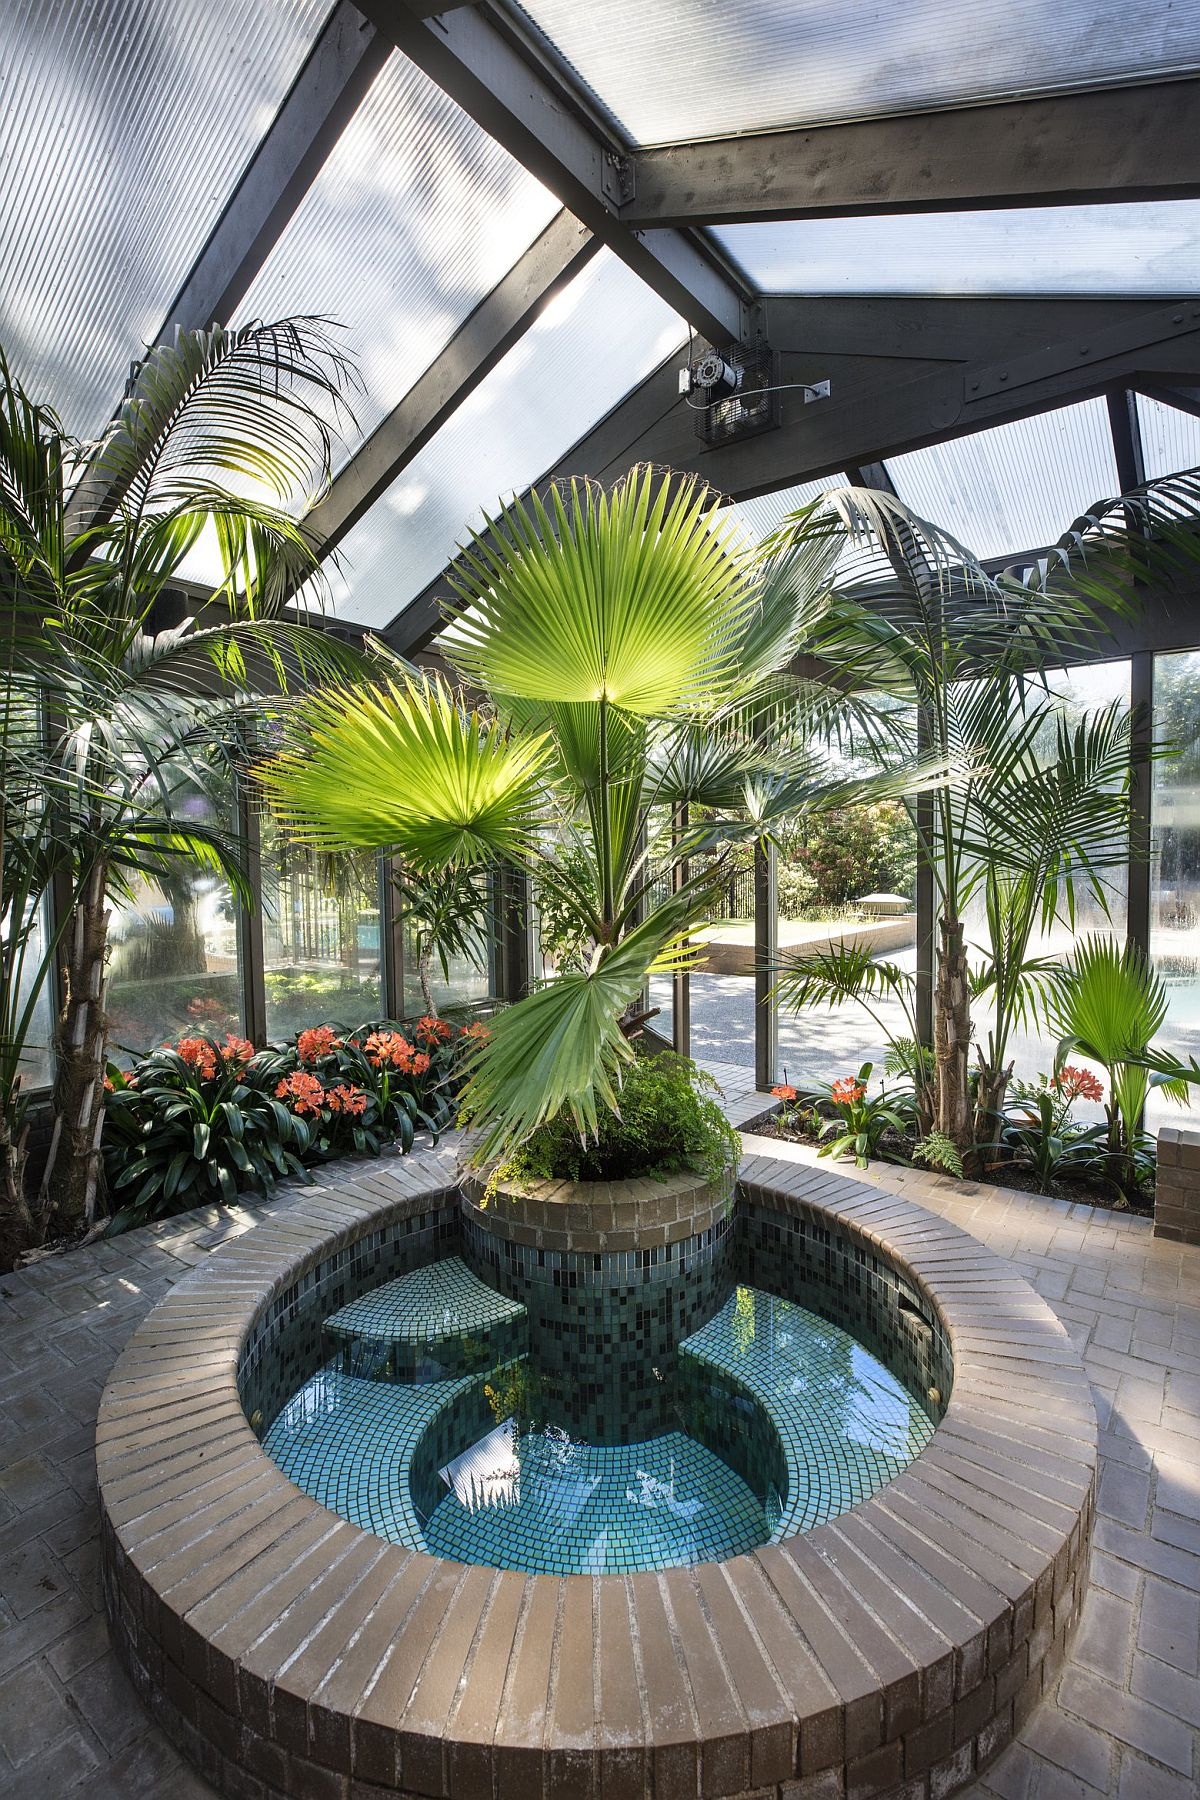 Brilliant tropical touches turn the hot tub feature into an absolute showstopper